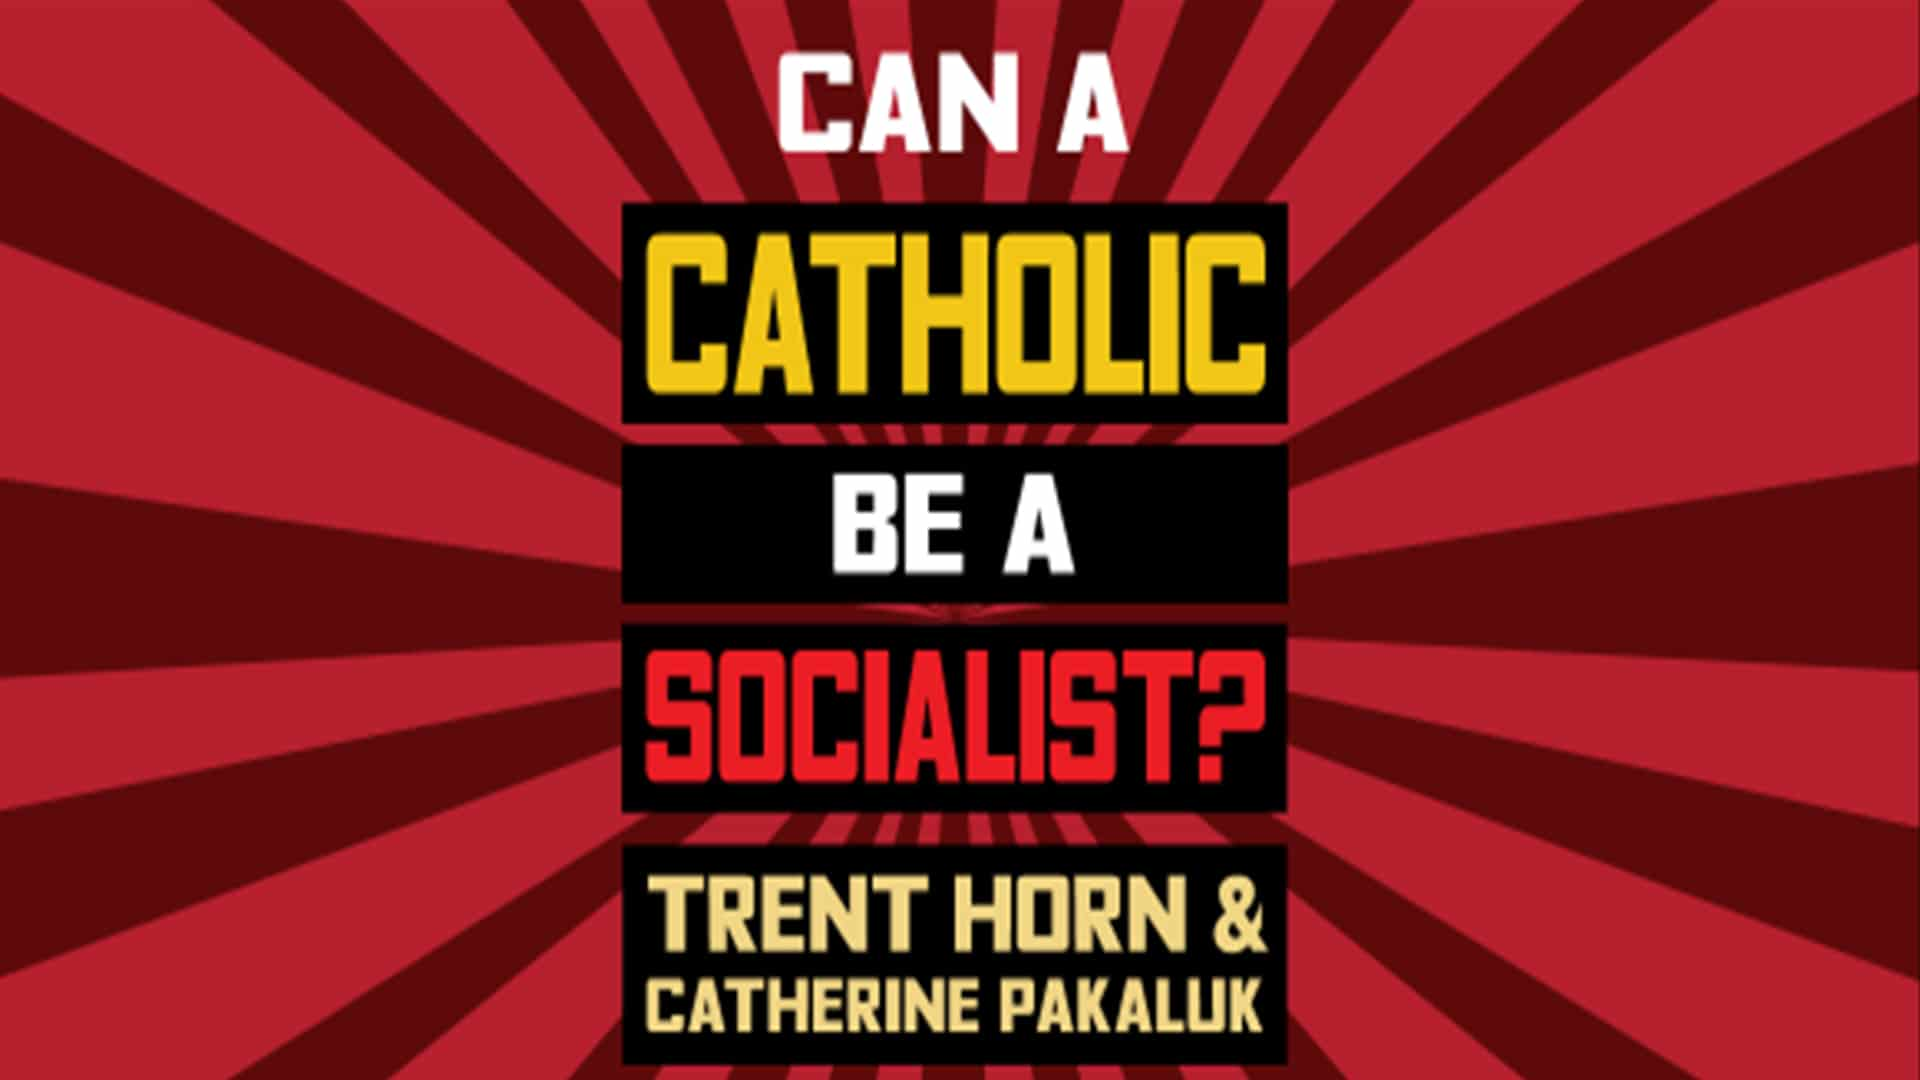 Can A Catholic Be A Socialist? With Catherine R. Pakaluk